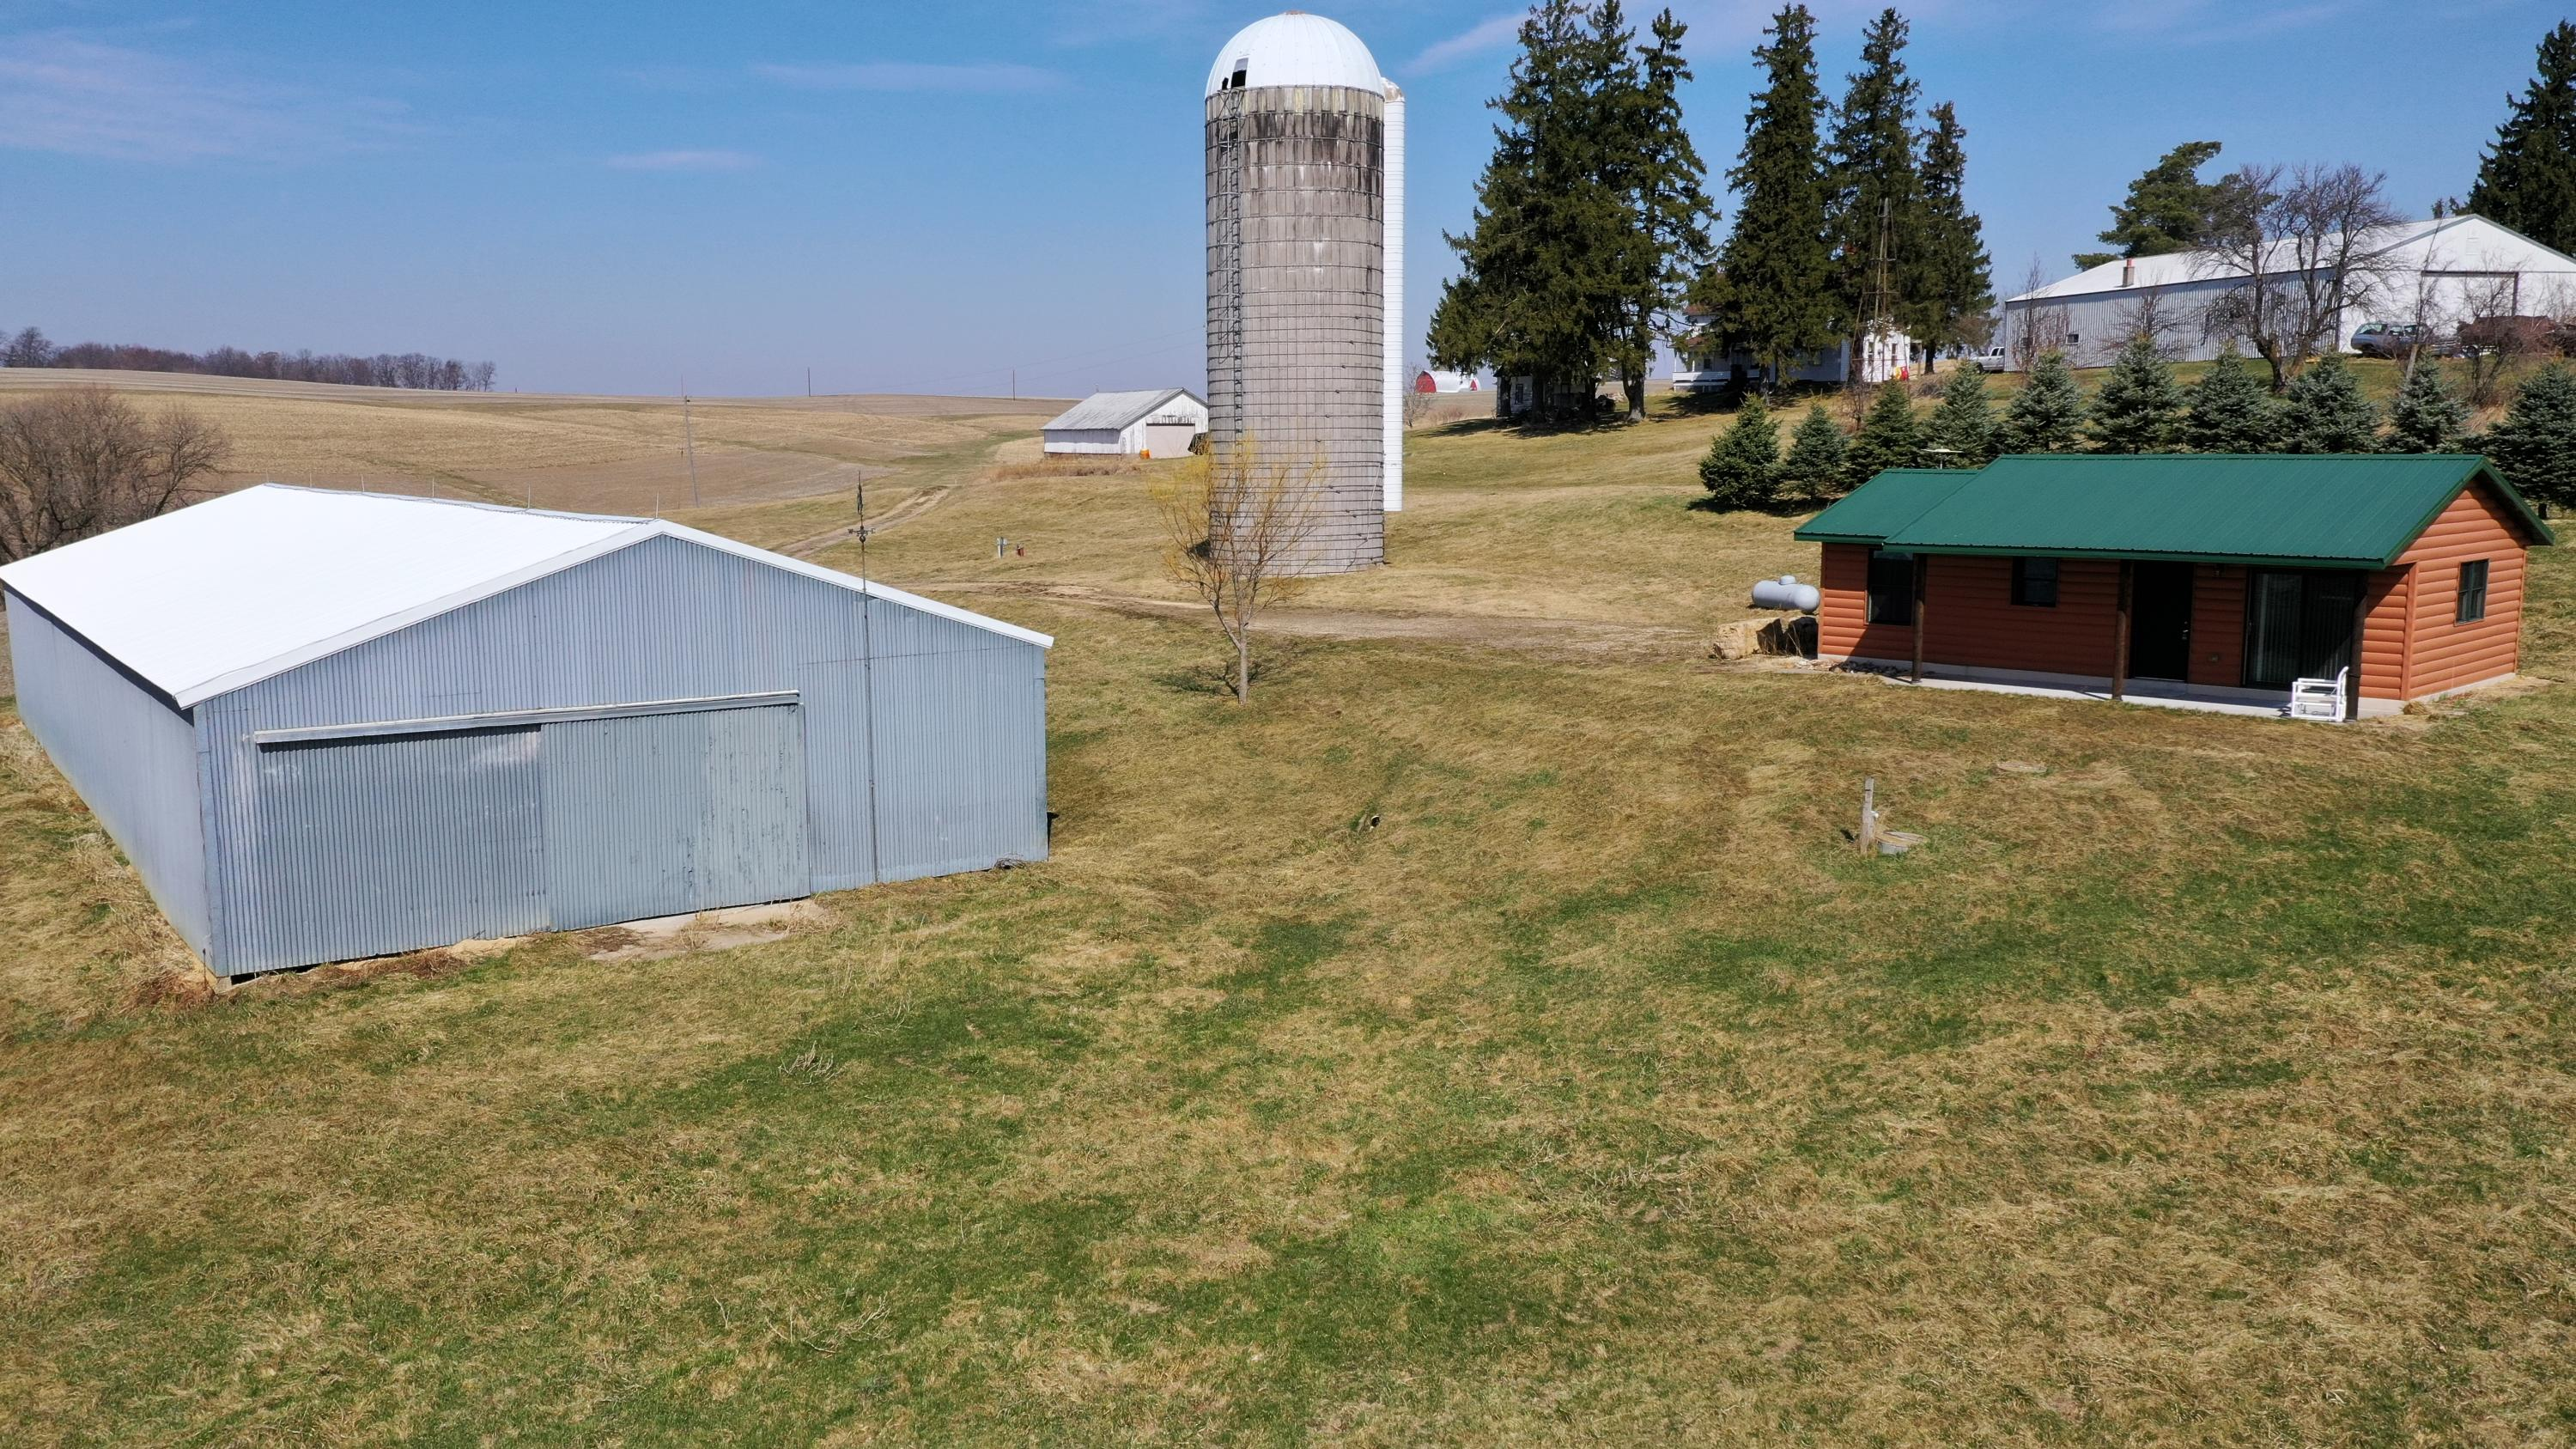 126.84 surveyed acres with well built and maintained 1 bedroom/1 bath get away cabin. New drilled well, holding tank septic system (could be converted to drain field) and 40X100 machine shed. Man made pond with earthen dam holds water year round and hasn't algaed over! Land consist of 66+/- tillable, 29 wooded(MFL), remainder pasture/building site. Great location within 30 minutes of La Crosse. A short distance from Class A trout streams! 3 hunting stands, ATV trails, plenty of room for horses, livestock, row crops, gardening and enjoying rural life! Smaller parcels available! MLS#1733484(10+/-acres with cabin and pole shed) MLS#1733486(66+/- acres of vacant land)